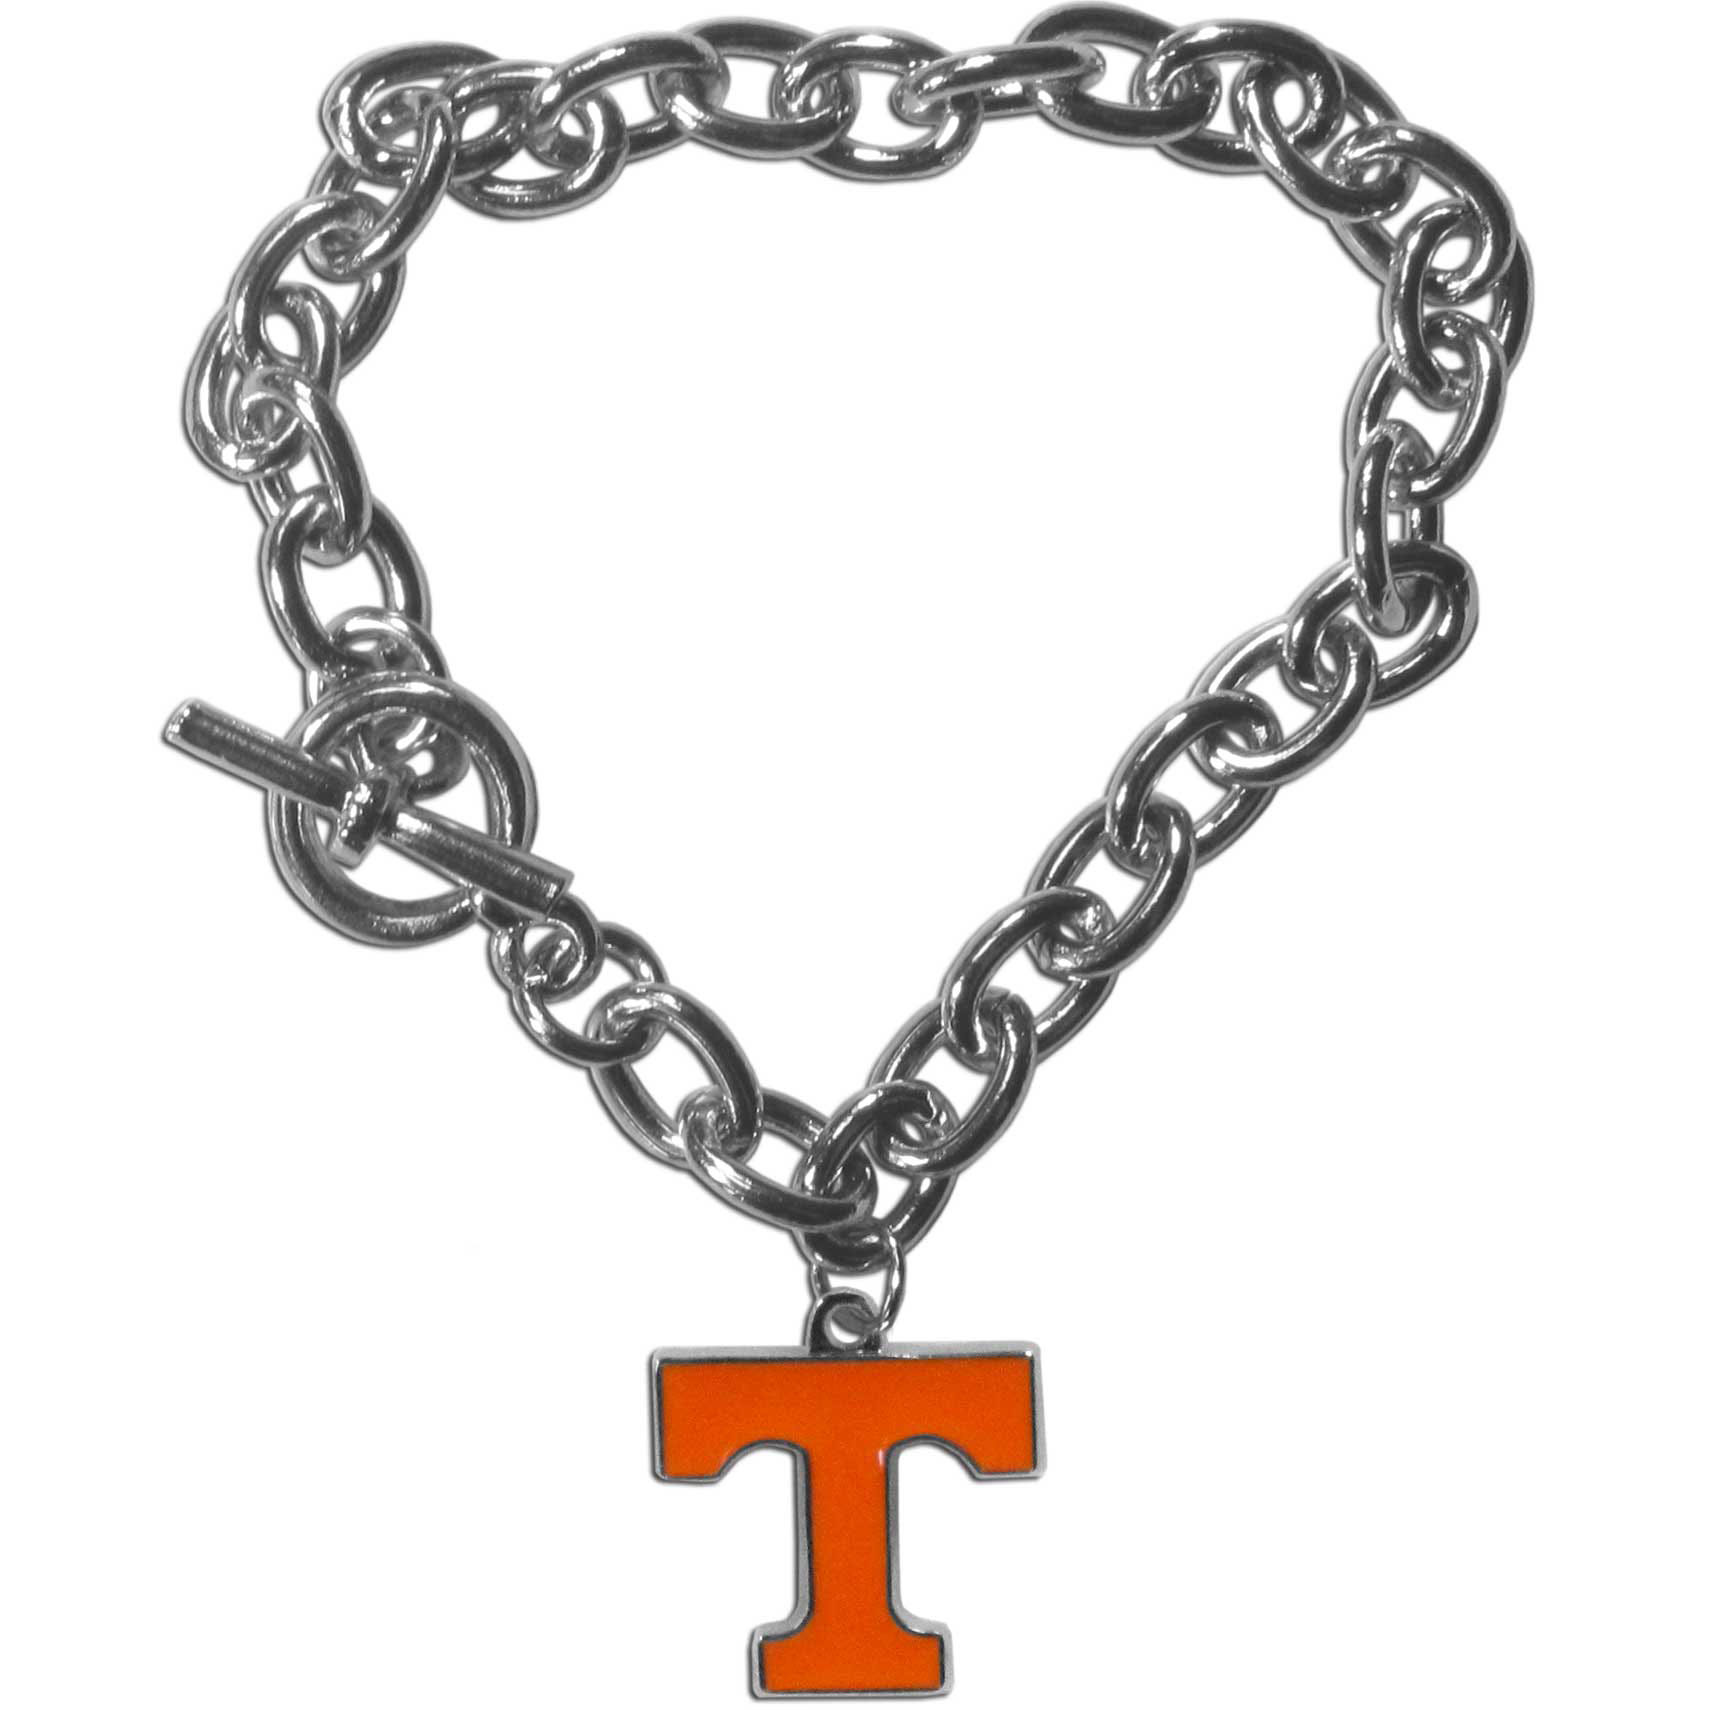 Tennessee Volunteers Charm Chain Bracelet - Our classic single charm bracelet is a great way to show off your team pride! The 7.5 inch large link chain features a high polish Tennessee Volunteers charm and features a toggle clasp which makes it super easy to take on and off.